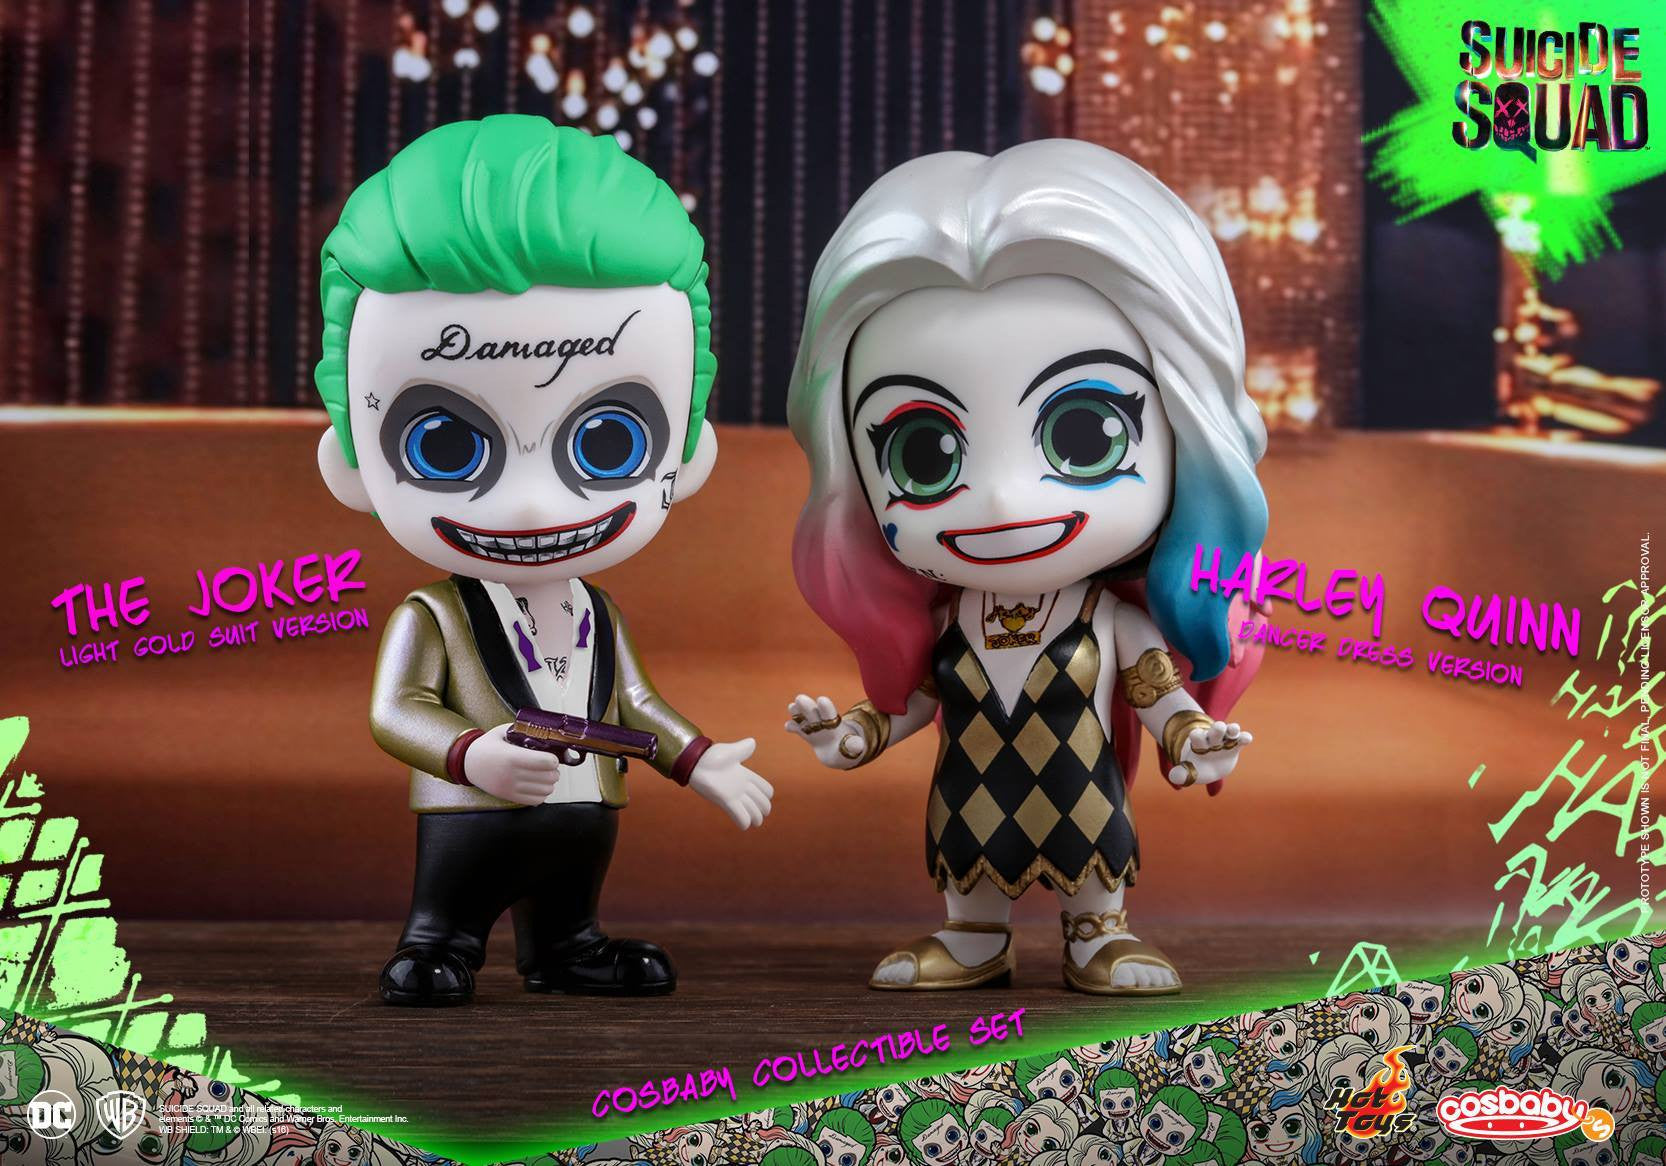 Hot Toys – COSB320 – Suicide Squad – The Joker (Light Gold Suit Version) & Harley Quinn (Dancer Dress Version) Cosbaby Collectible Set - Marvelous Toys - 1